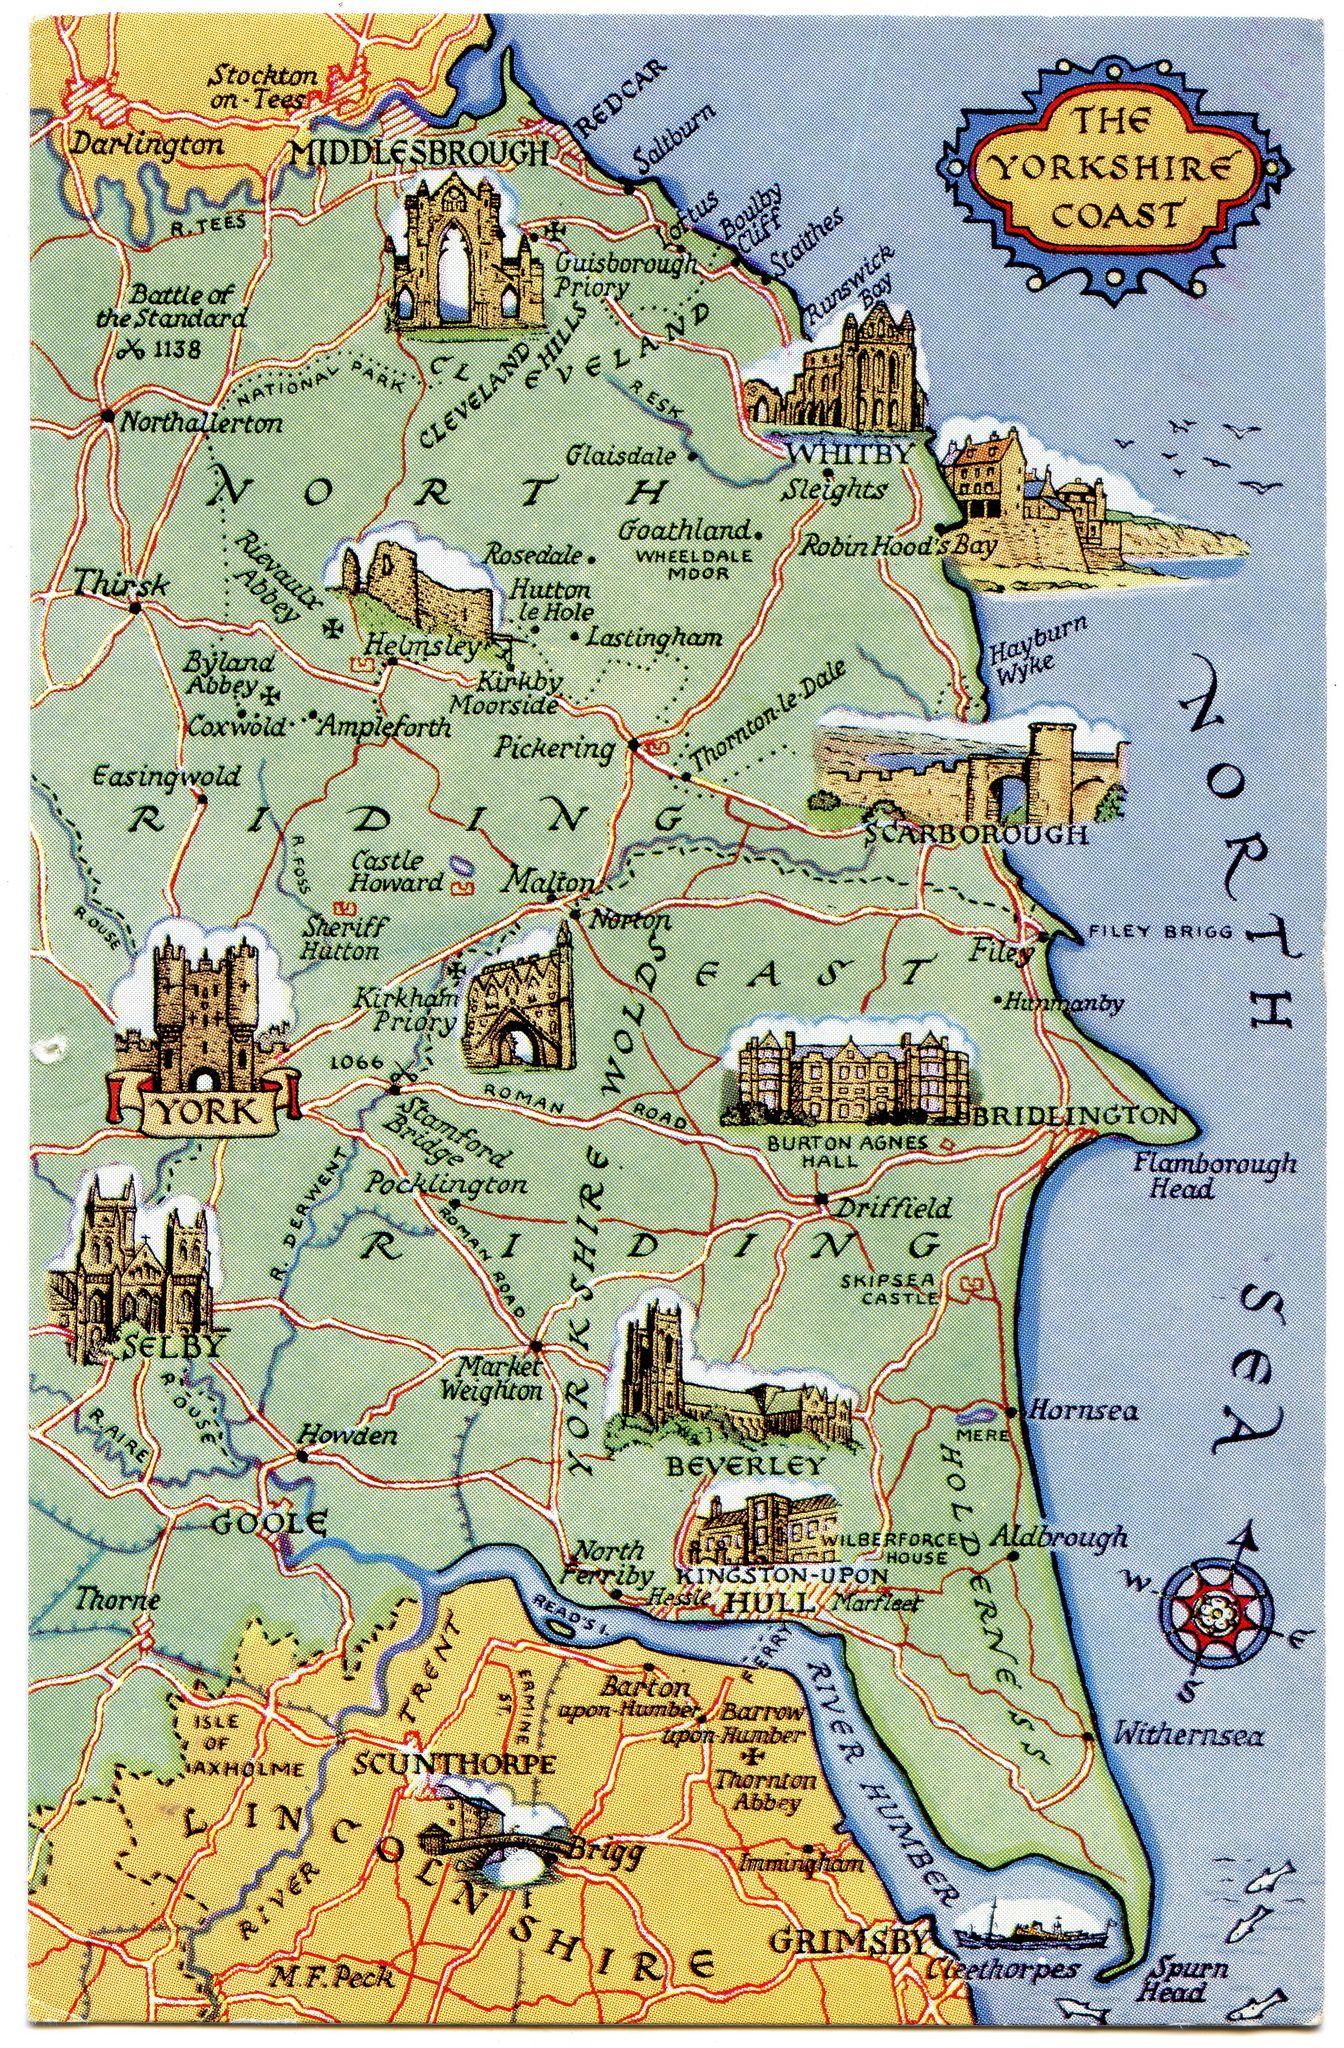 Postcard Map Of The Yorkshire Coast